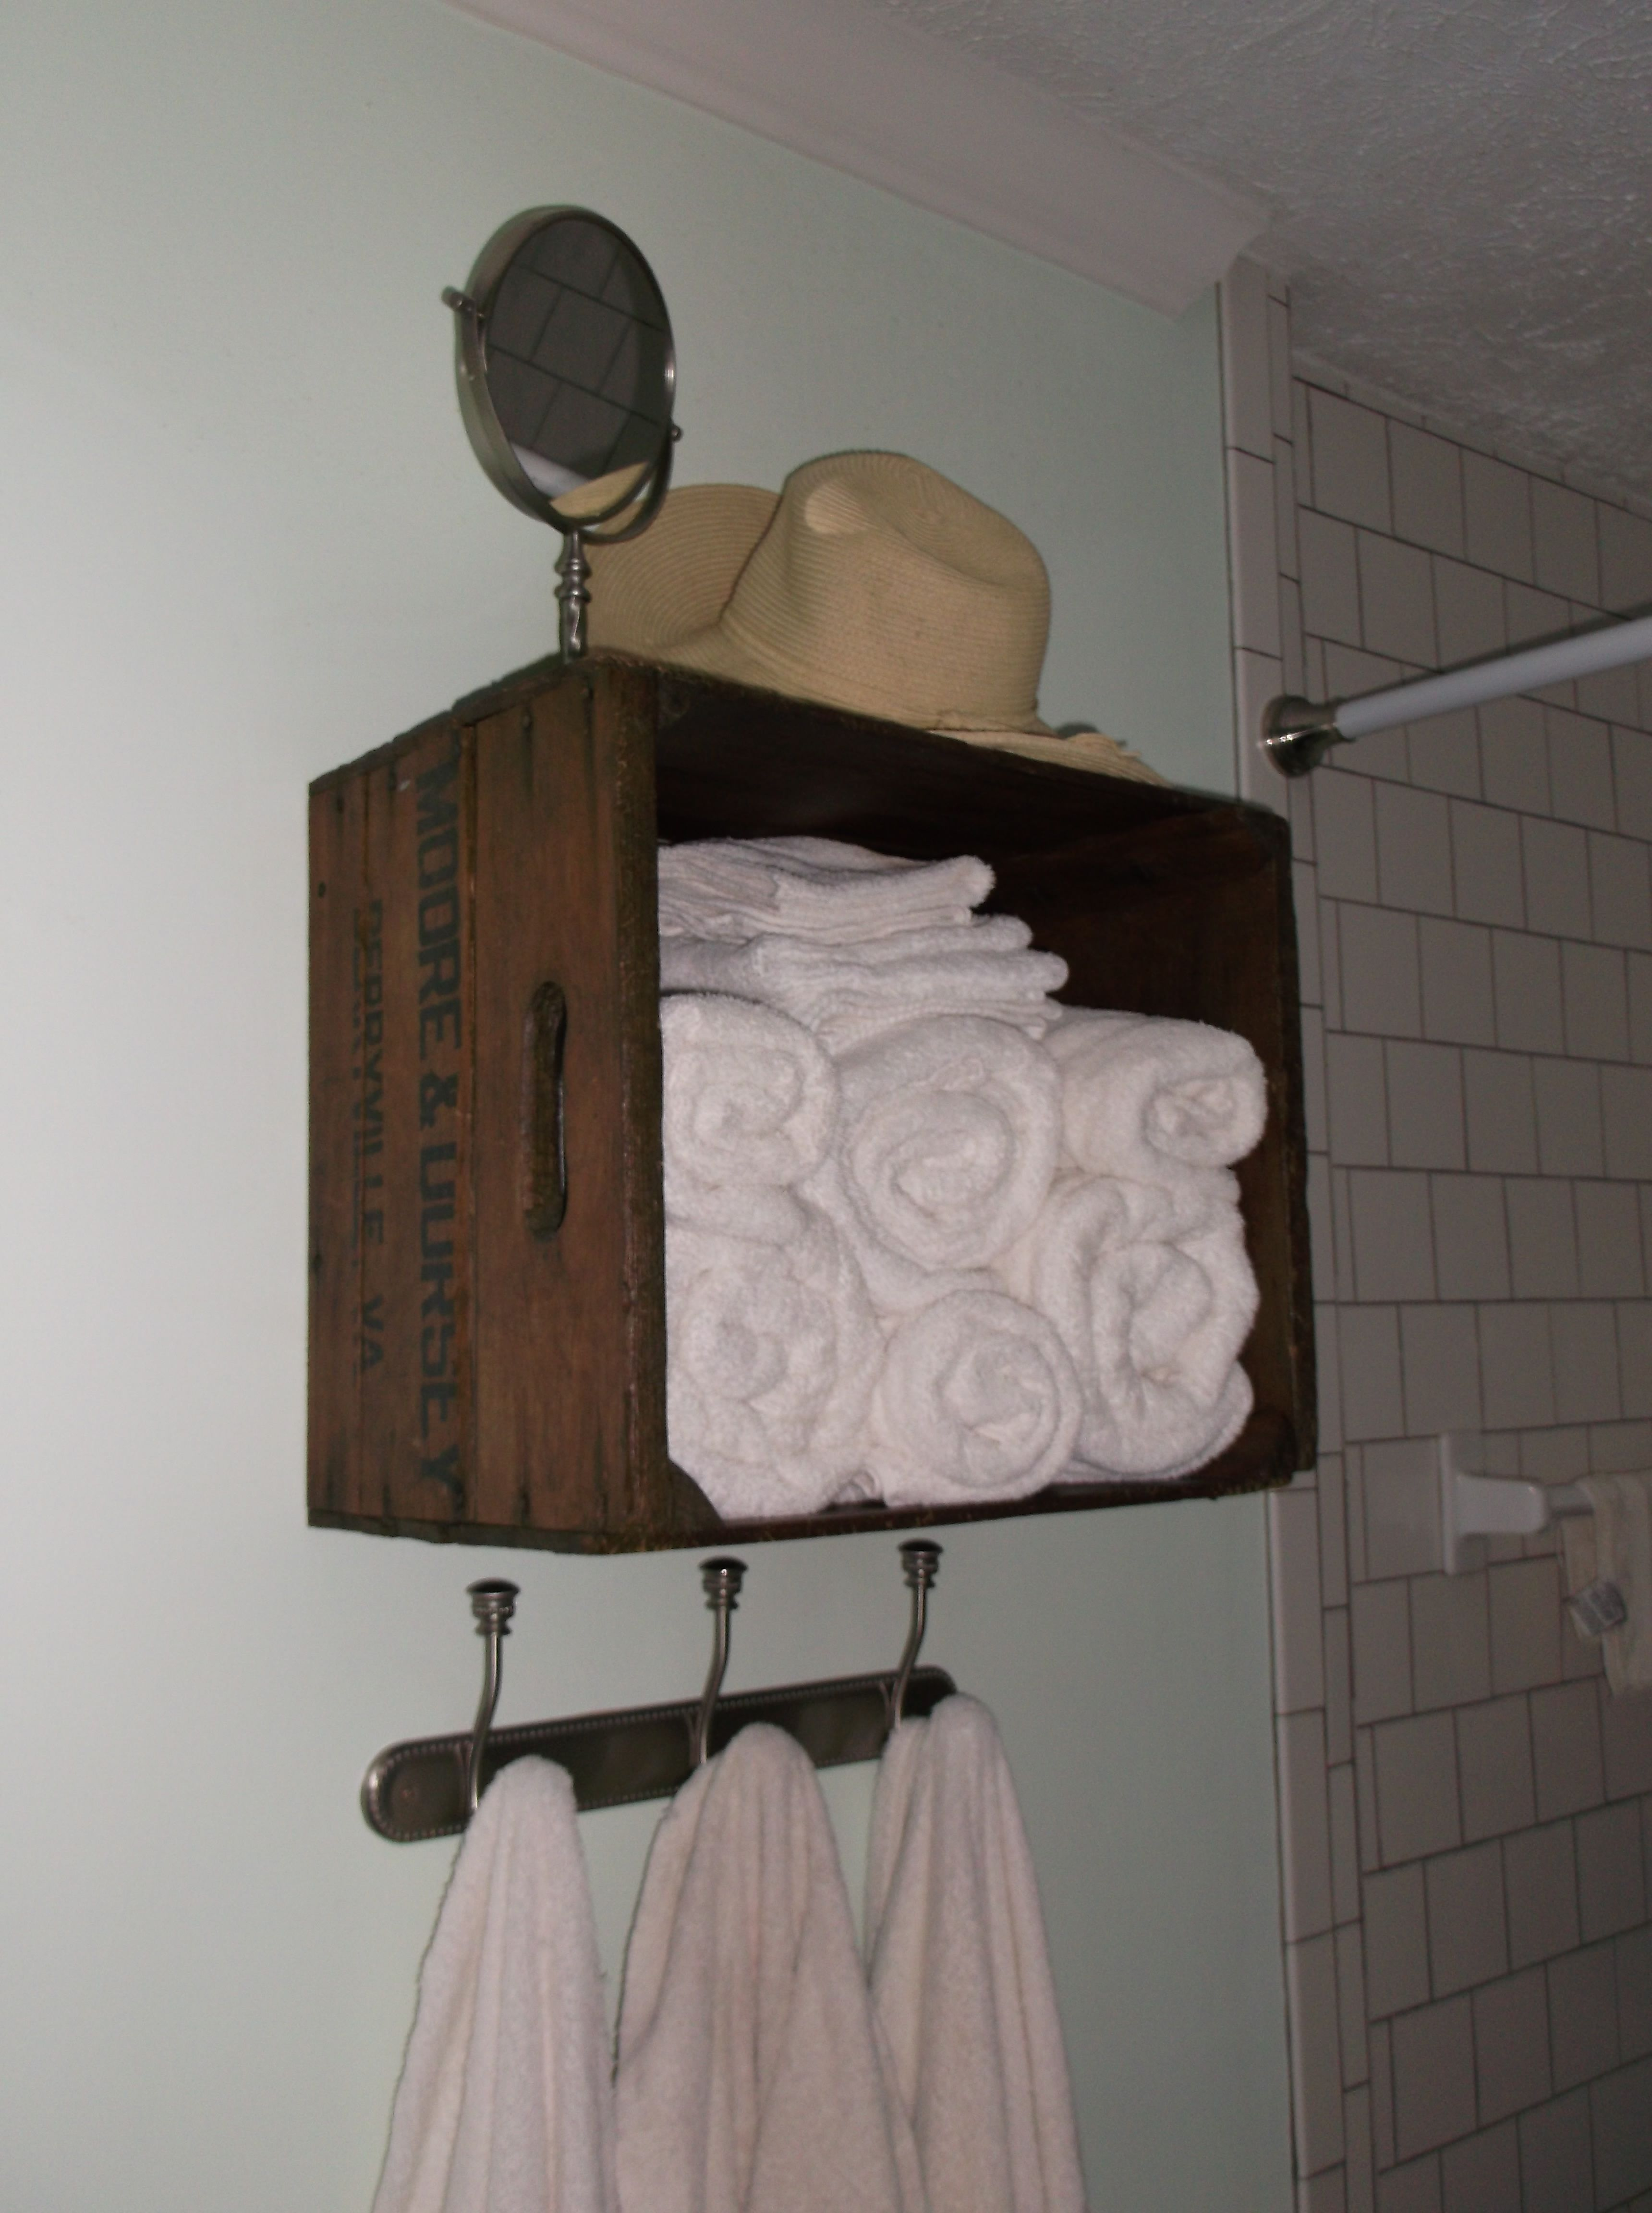 old apple crate turned towel shelf  my creations  pinterest  - old apple crate turned towel shelf